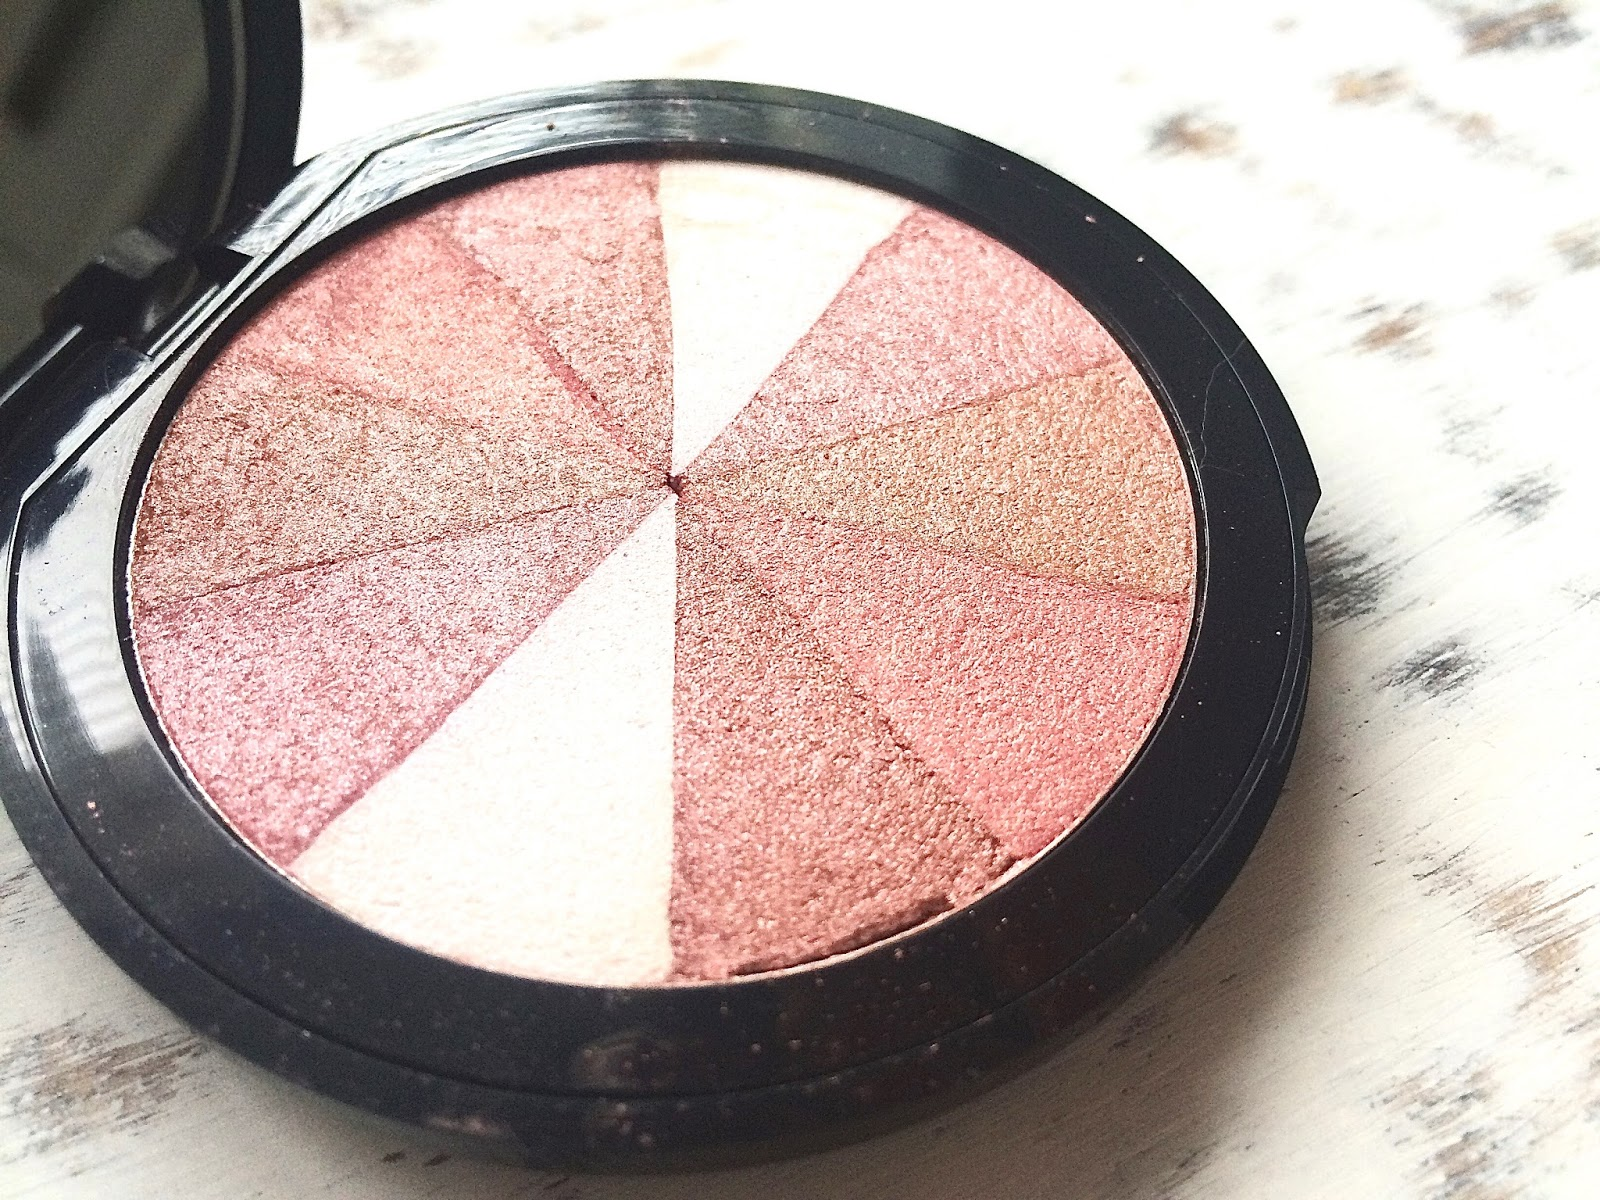 Soap & Glory's Love at First Blush blusher & highlighter